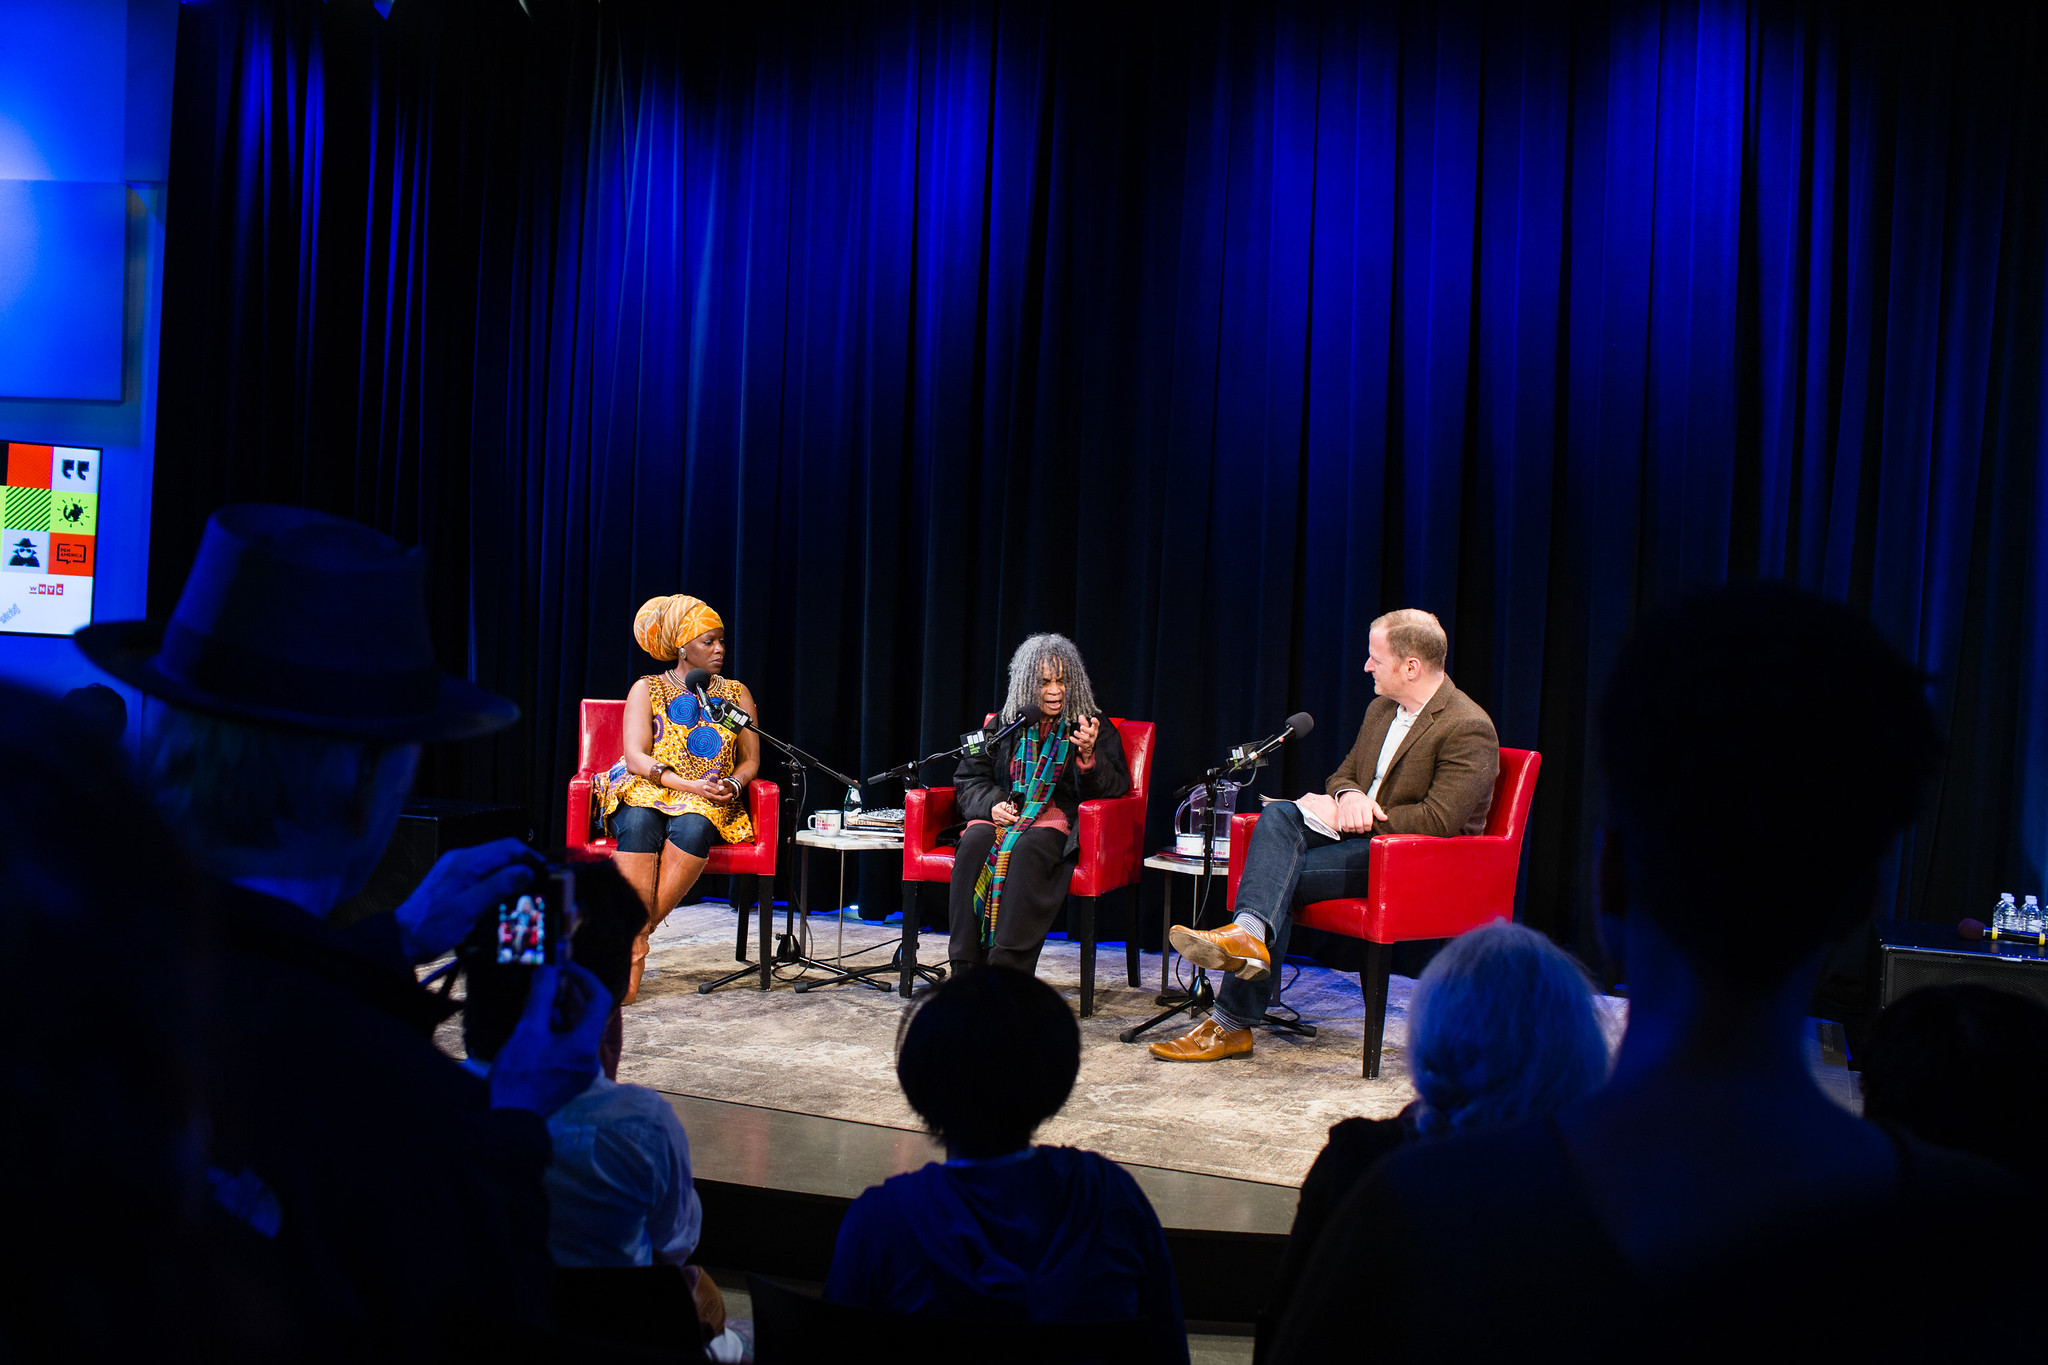 2019 PEN World Voices Festival: Words of the Worker Writer, featuring Sonia Sanchez